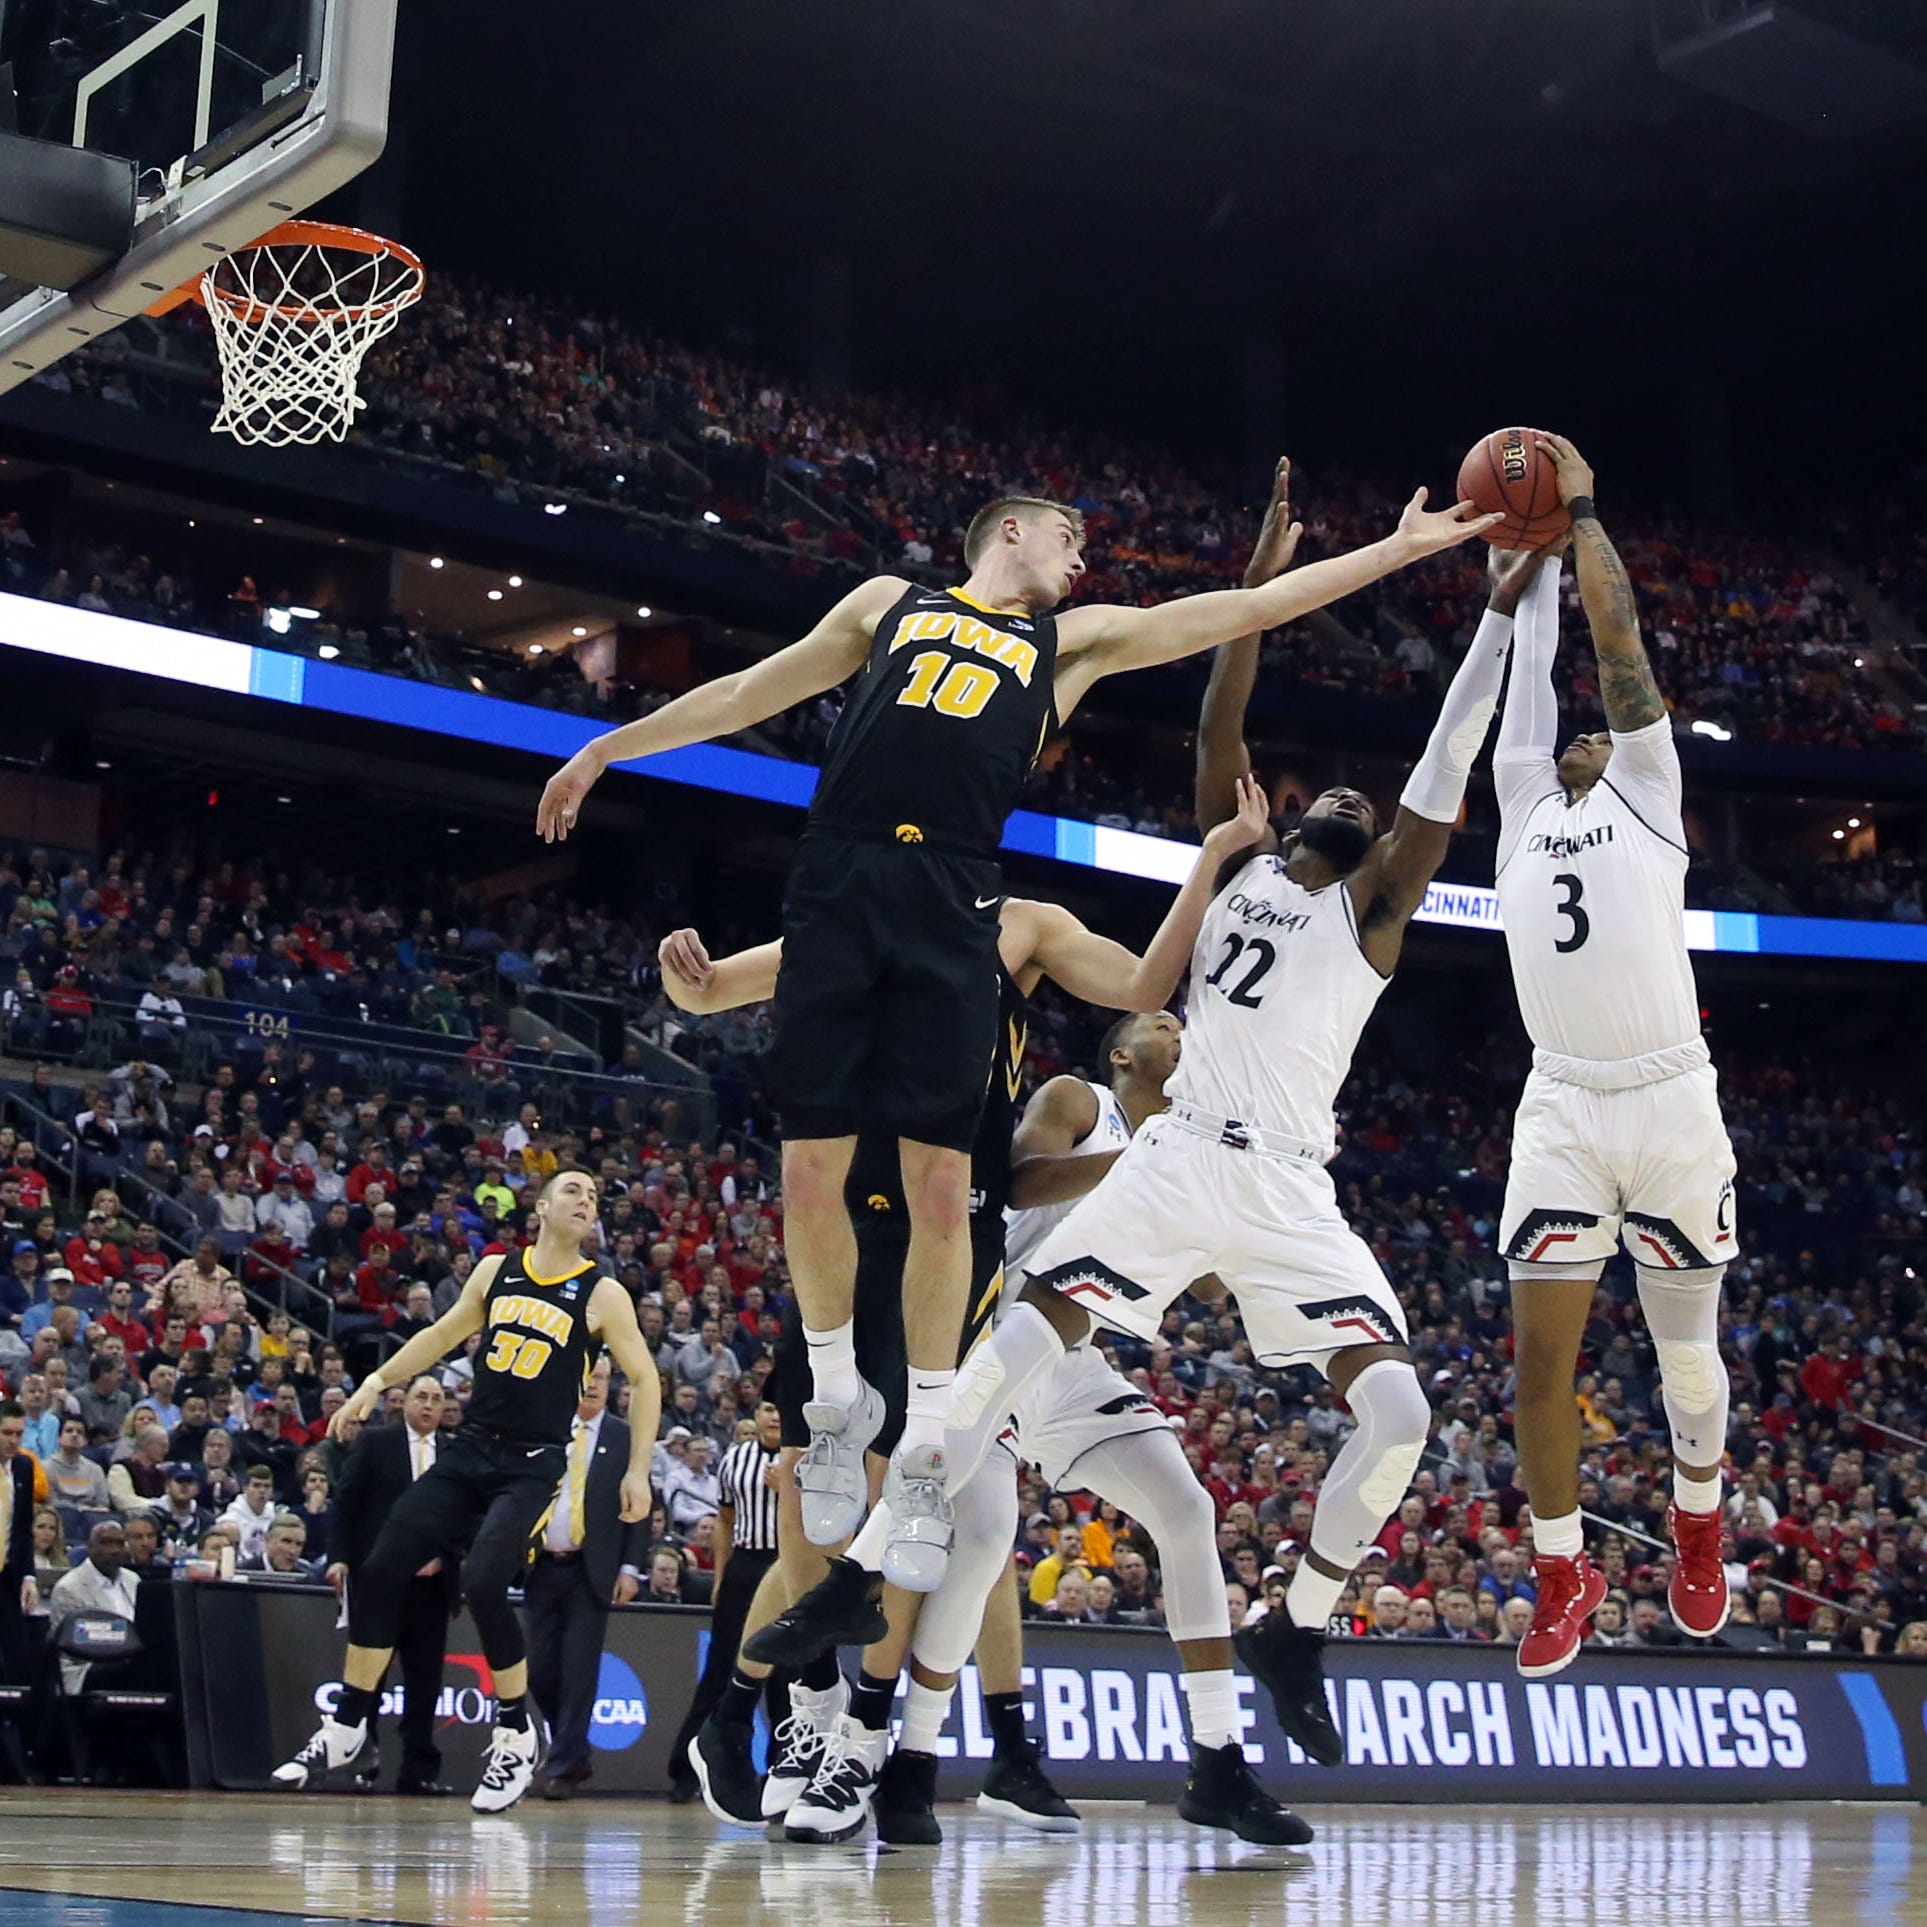 NCAA Tournament: Iowa Hawkeyes prove their mettle in second half to conquer Cincinnati on biggest stage